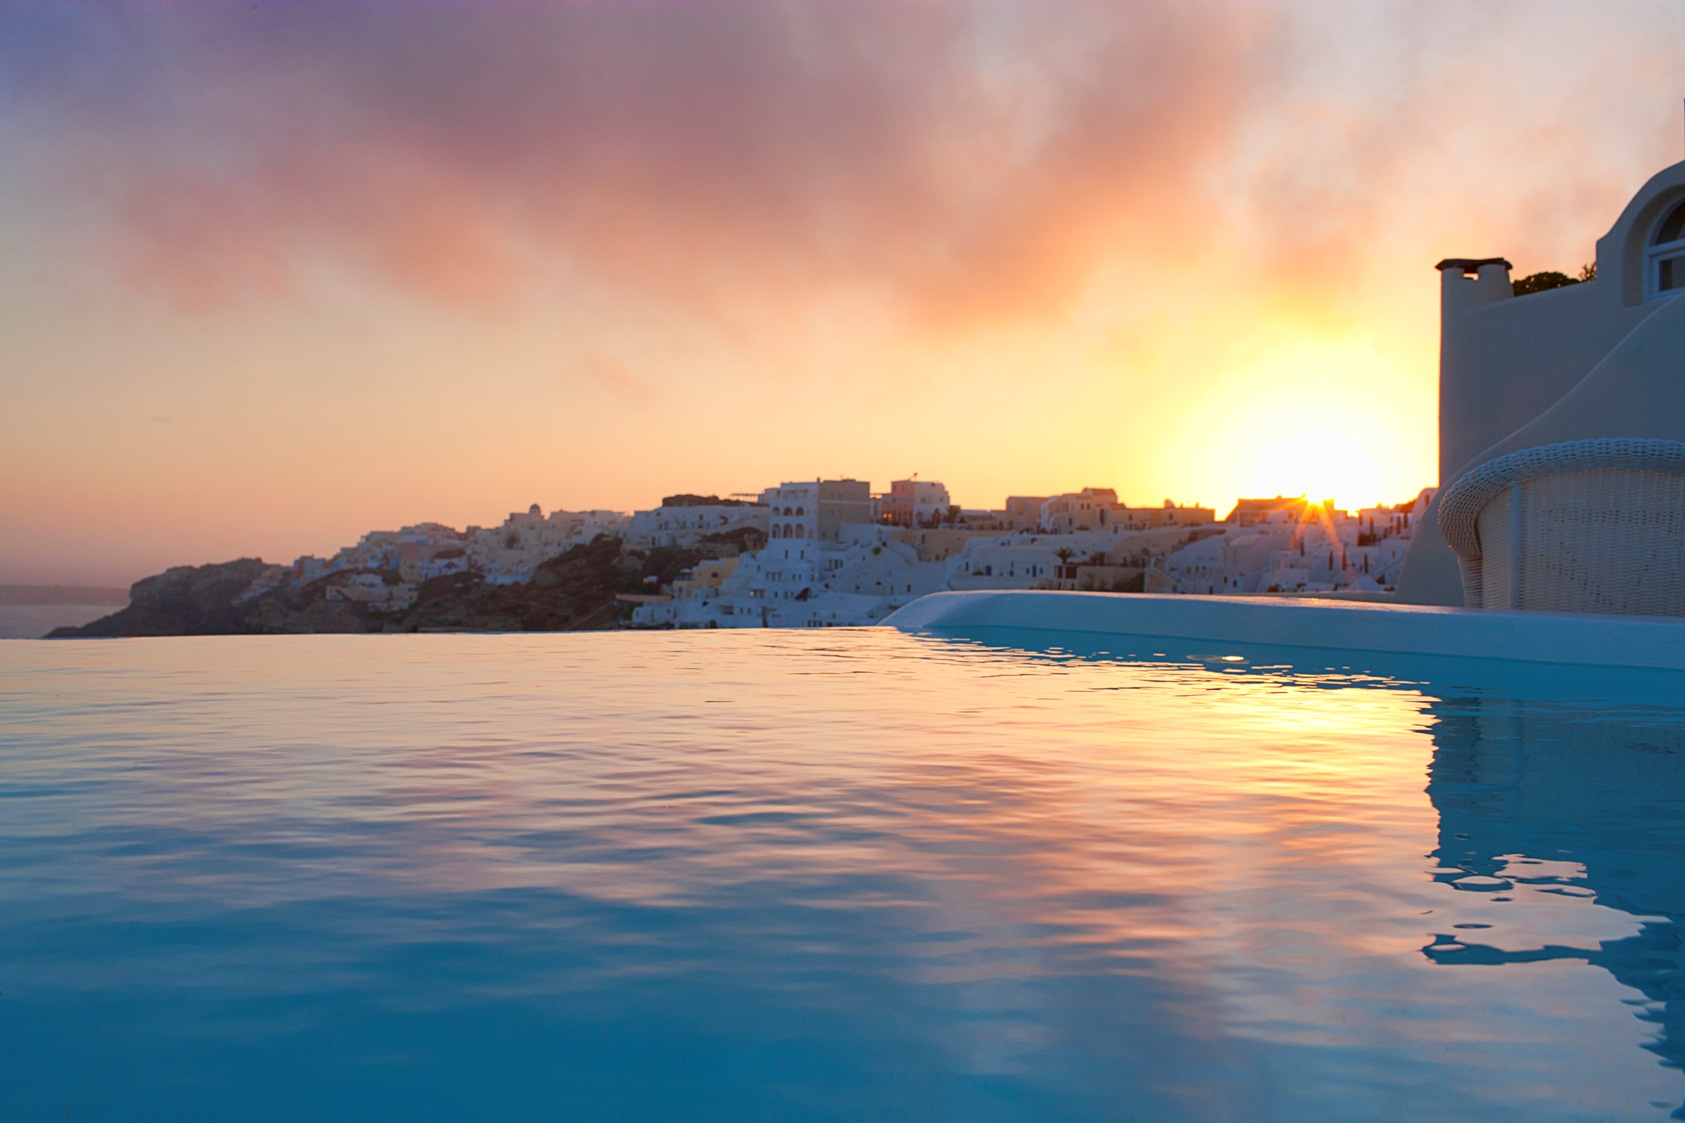 Top Spots To Watch The Sunset In Santorini